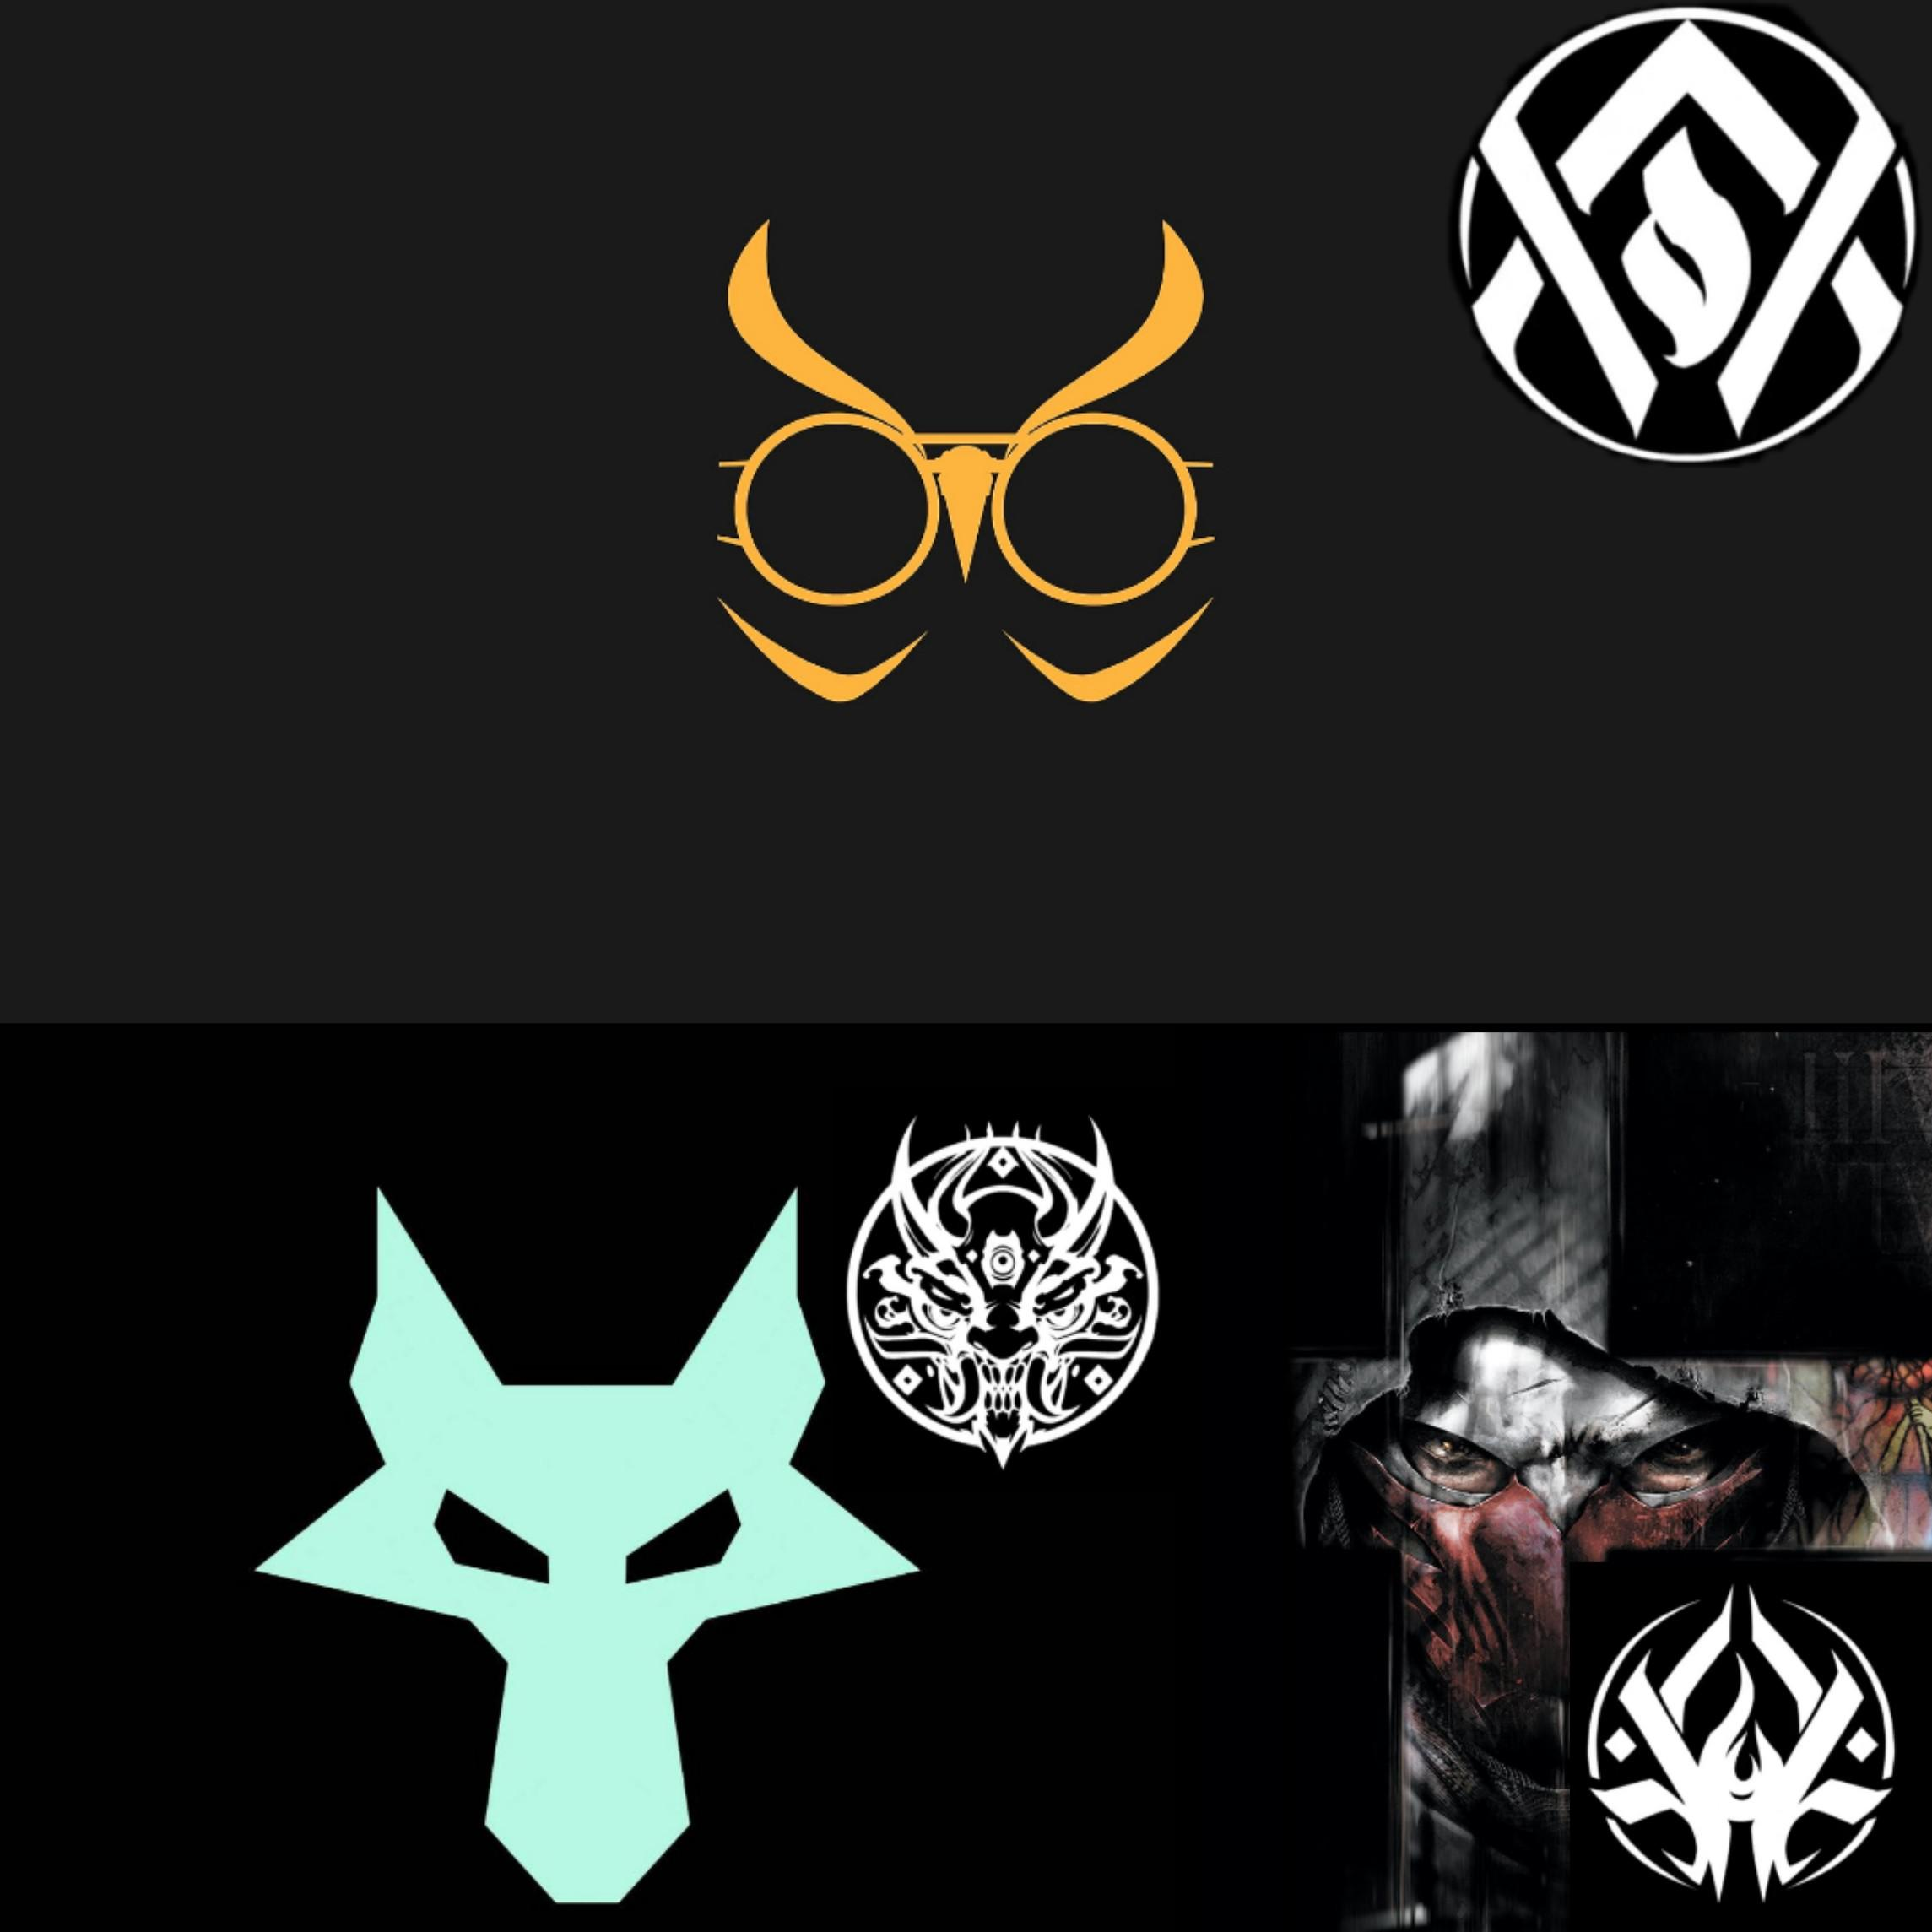 REPRESENT OF THE COURT OF OWLS.